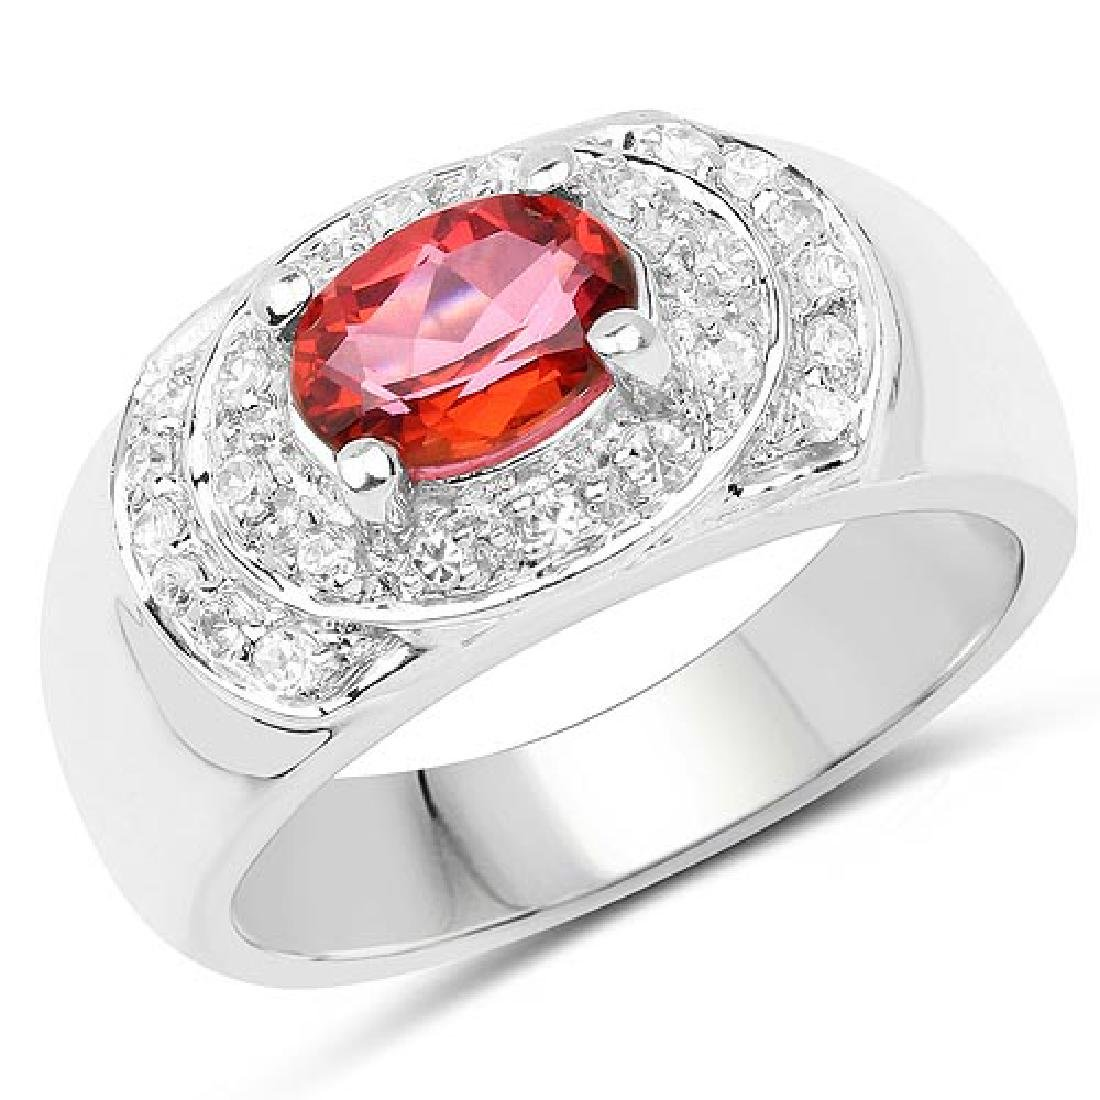 1.37 Carat Genuine Pink Topaz and White Cubic Zirconia